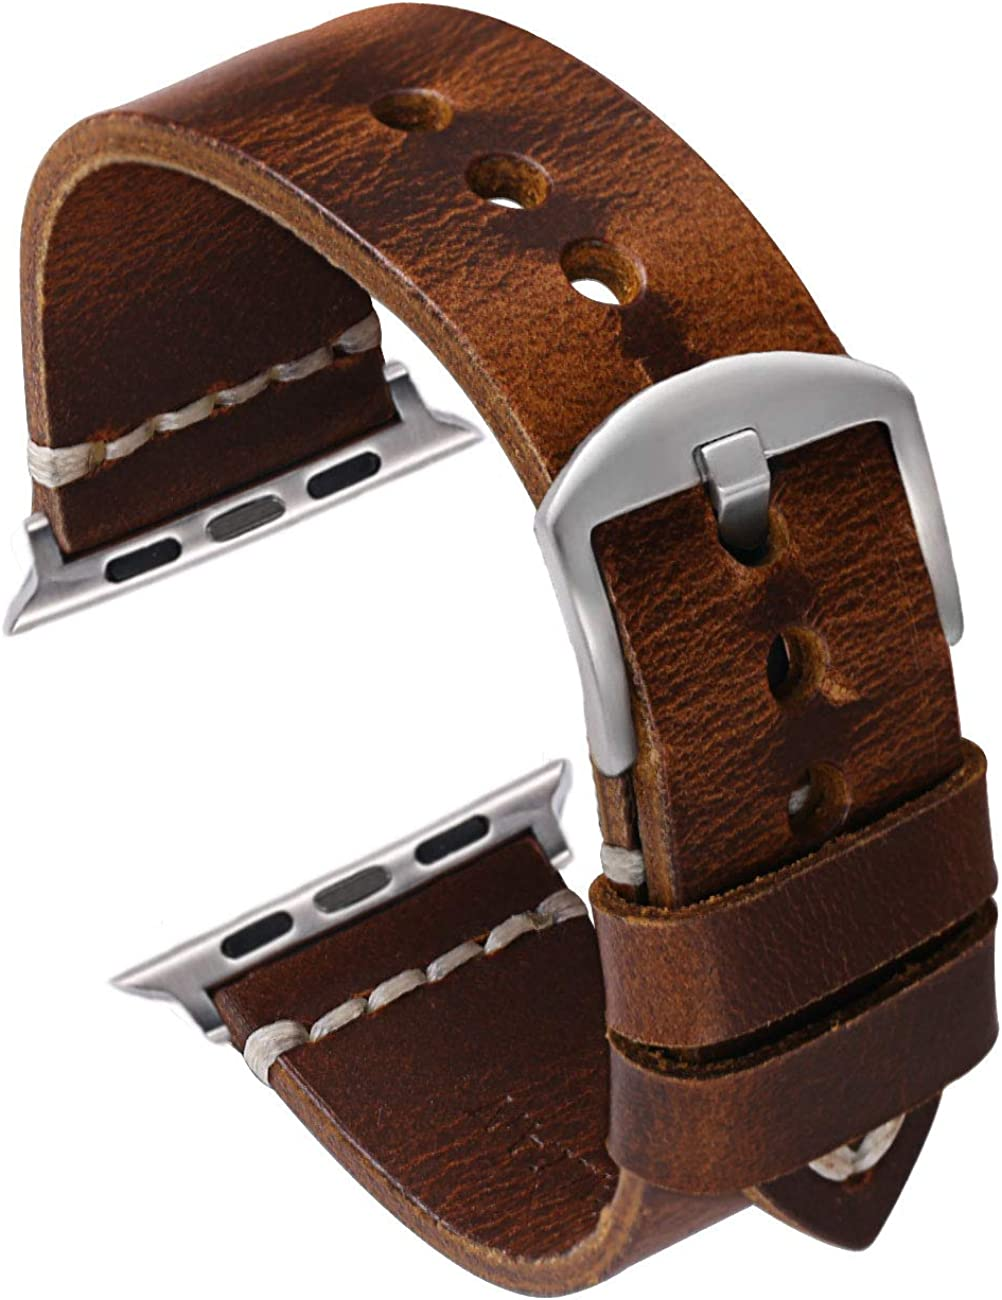 Oil Wax Leather Strap Watchband Compatible with Smart Watch Band 38mm 42mm Series 123, Nike+,Sport,Edition,Dark Brown